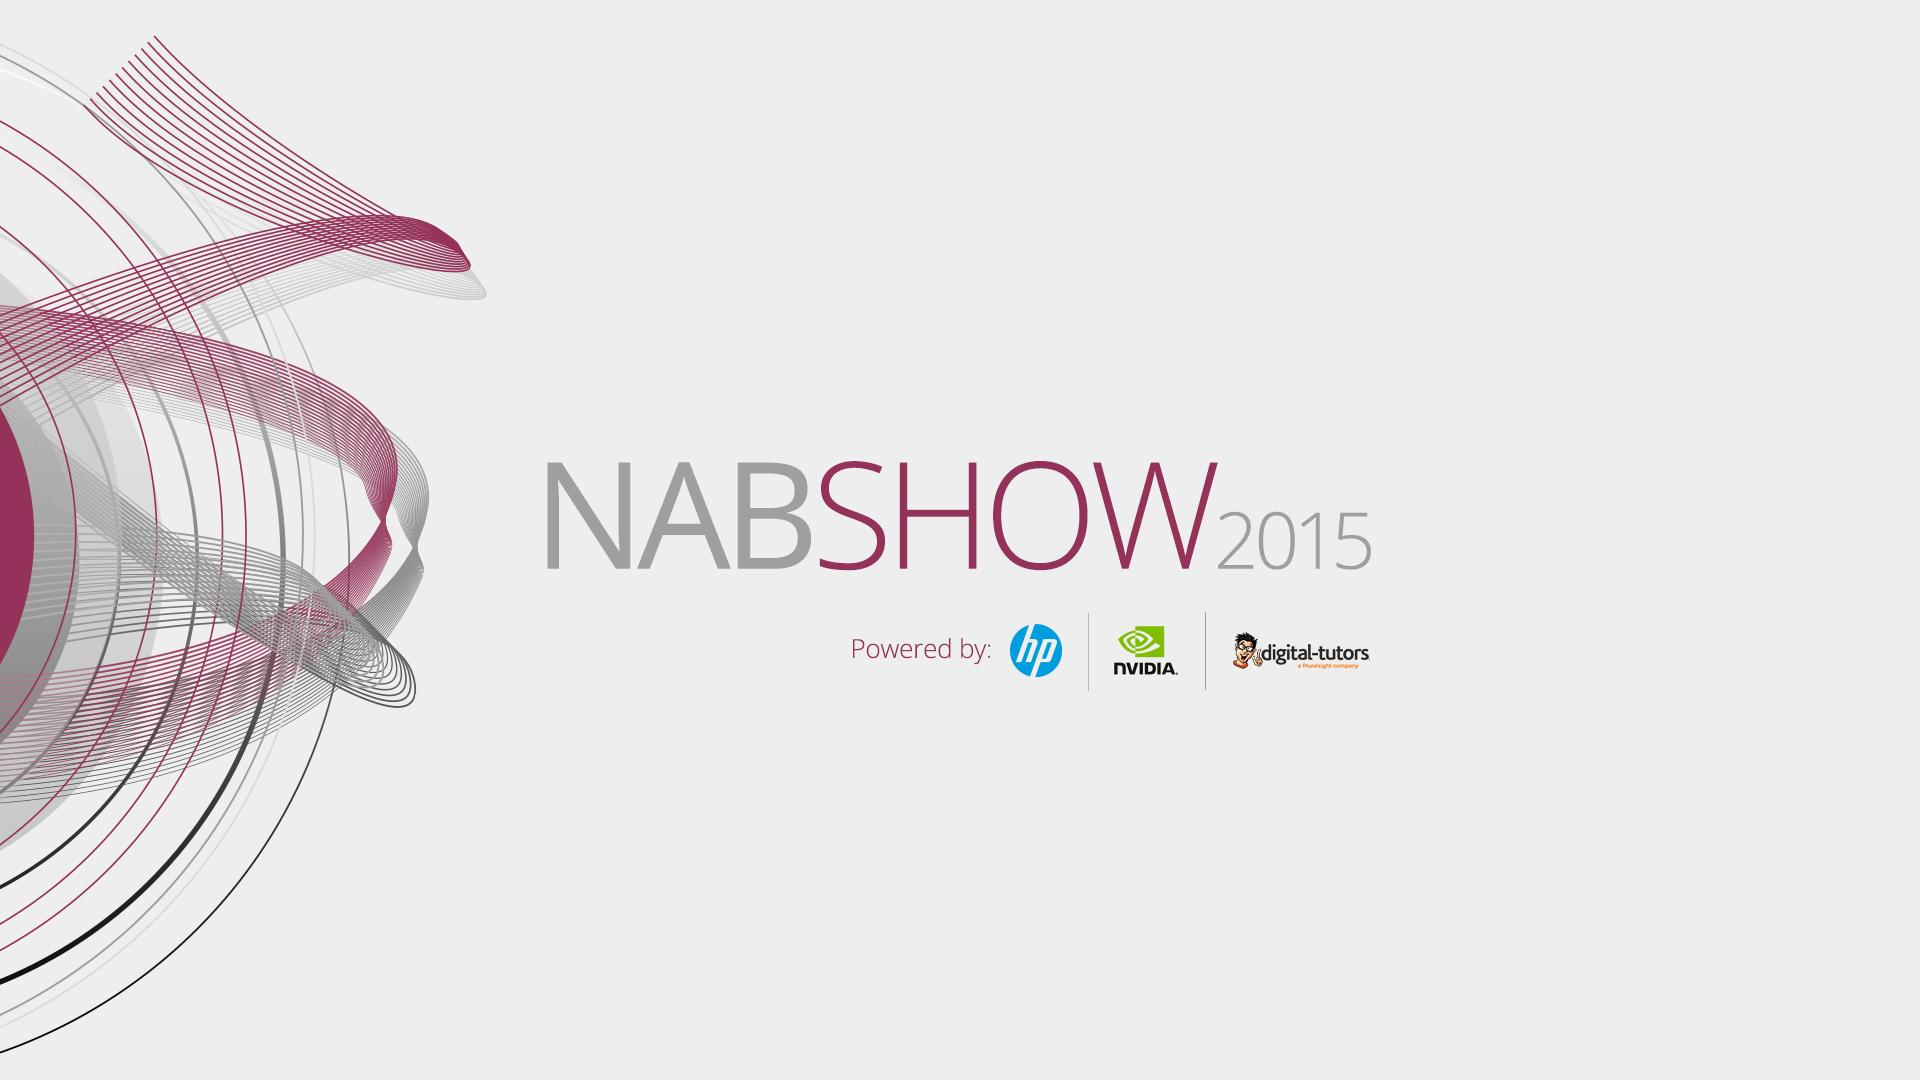 NAB show 2015 where Foundry showcases the future of virtual and augmented reality